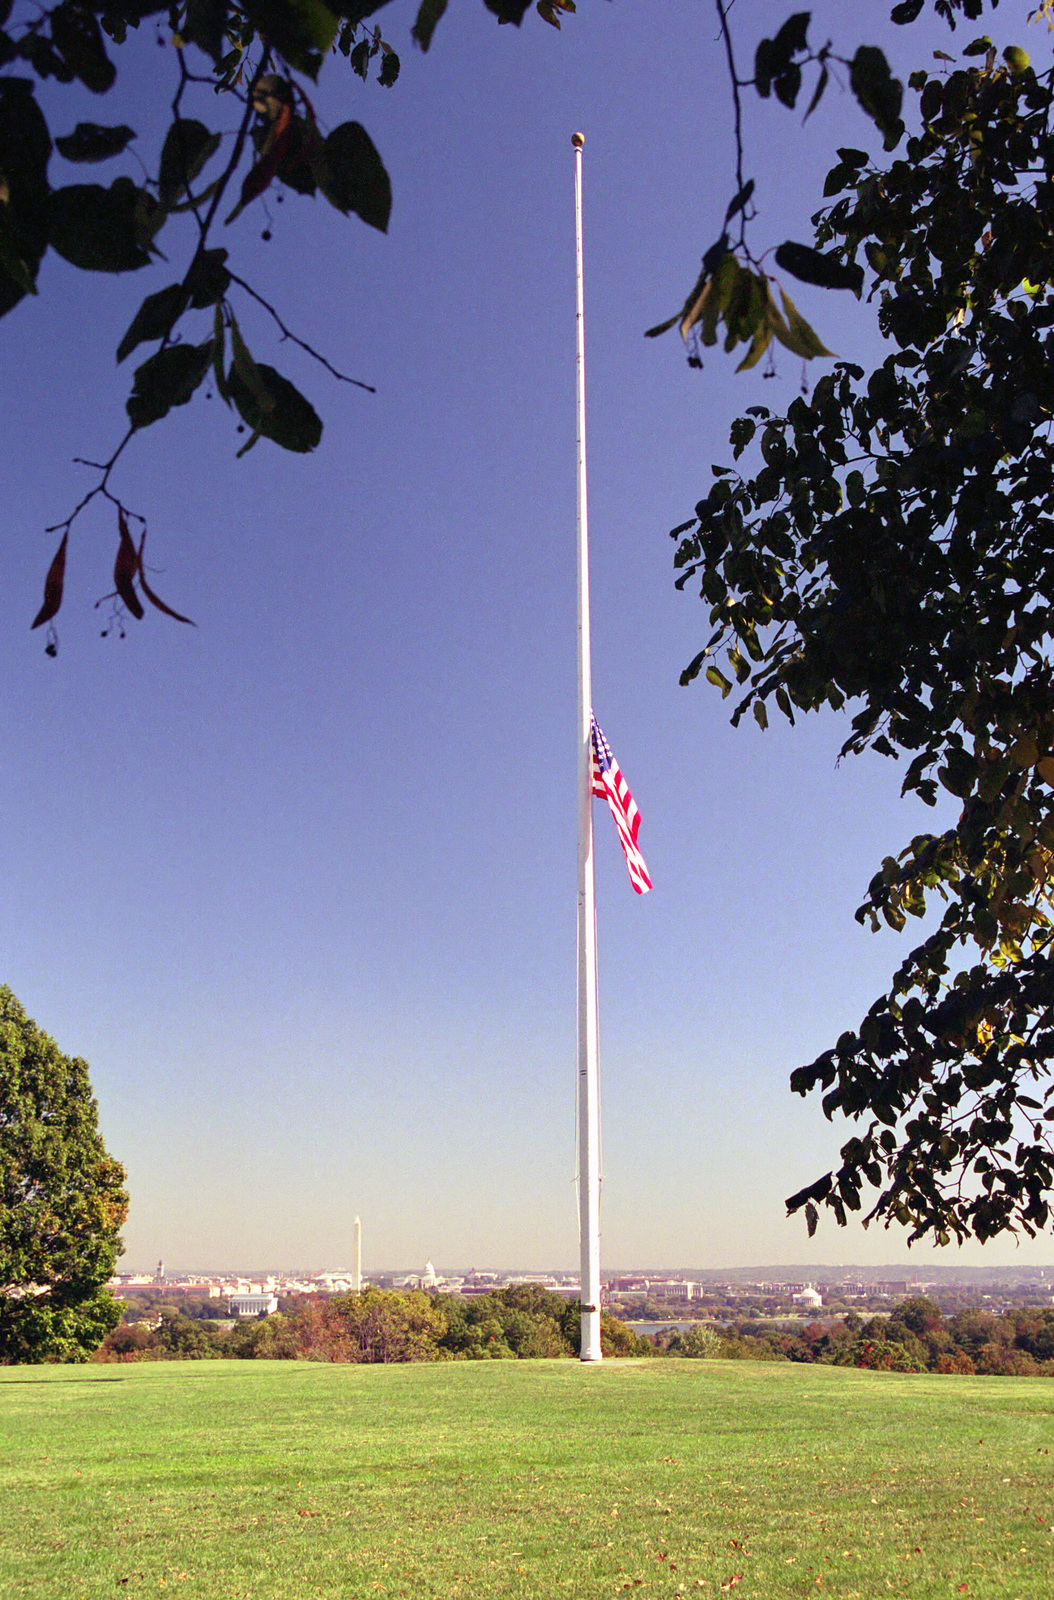 At Whipple Field, Fort Myer, the Flag of the United States is flown at half-mast at the direction of the President in memory of those service members killed onboard the USS COLE